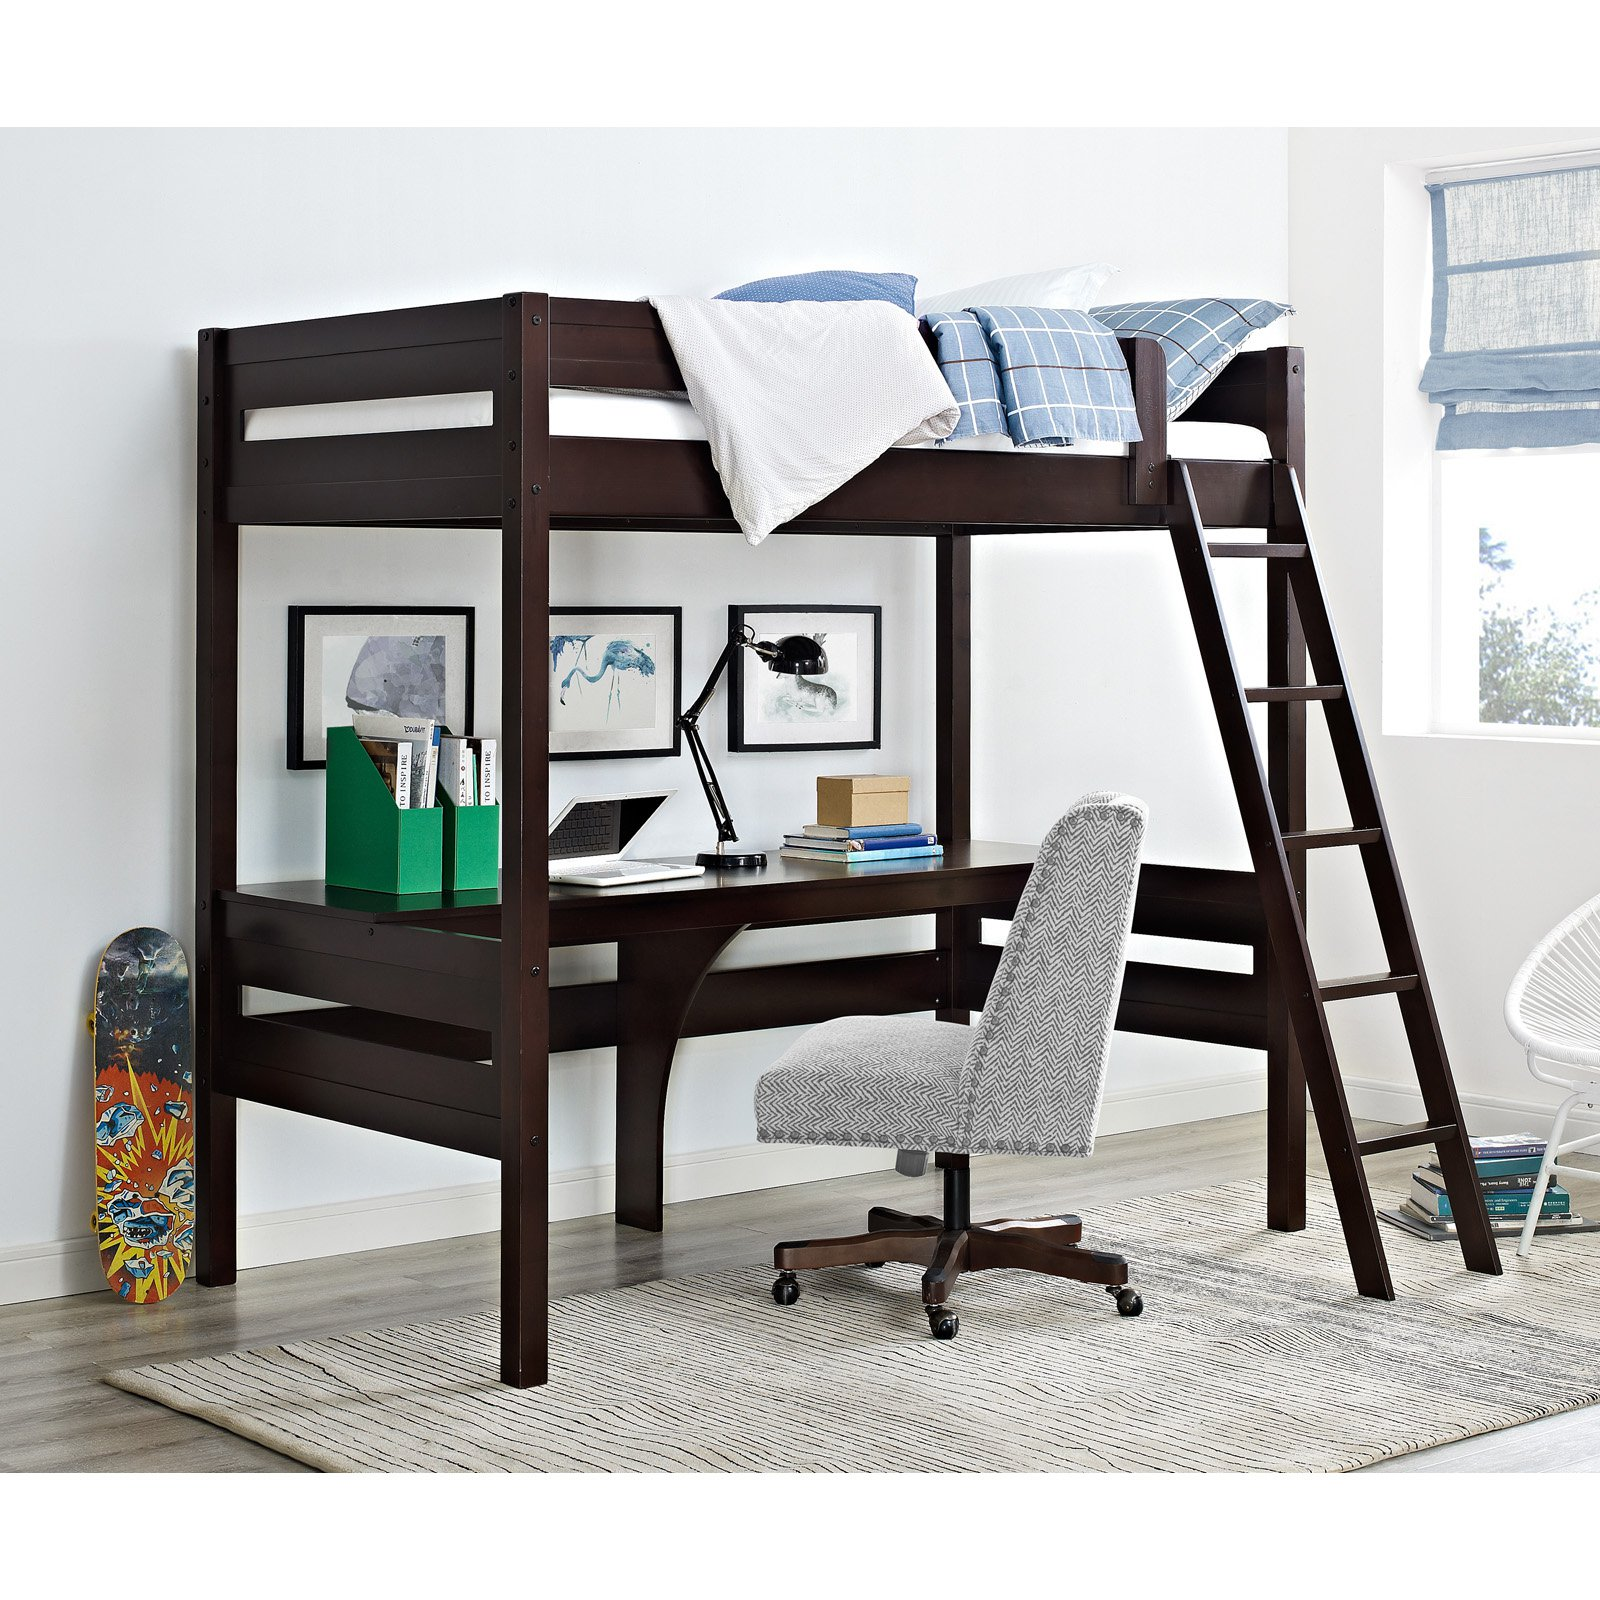 Dorel Living Harlan Twin Wood Loft Bed with Desk, Multiple Colors -  Traveller Location